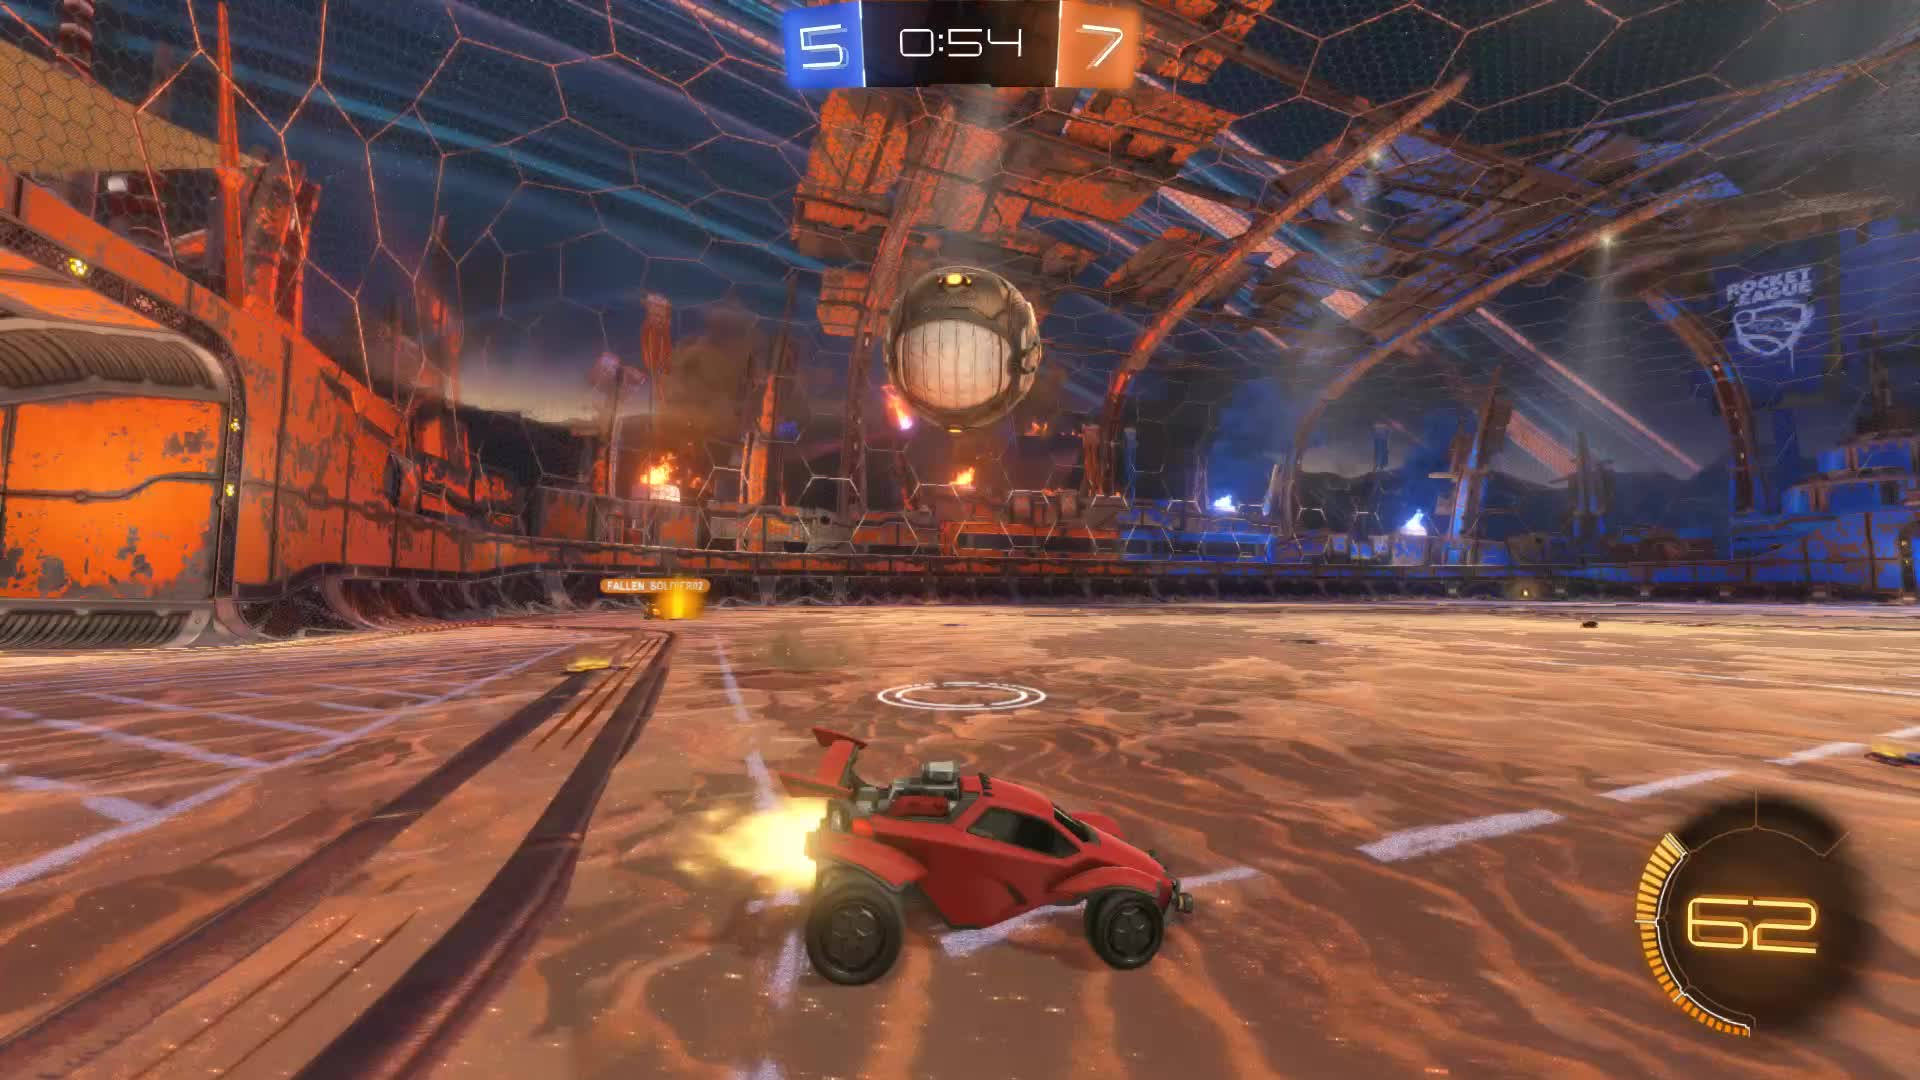 Gif Your Game, GifYourGame, Goal, NyhxSalt, Rocket League, RocketLeague, Goal 13: NyhxSalt GIFs